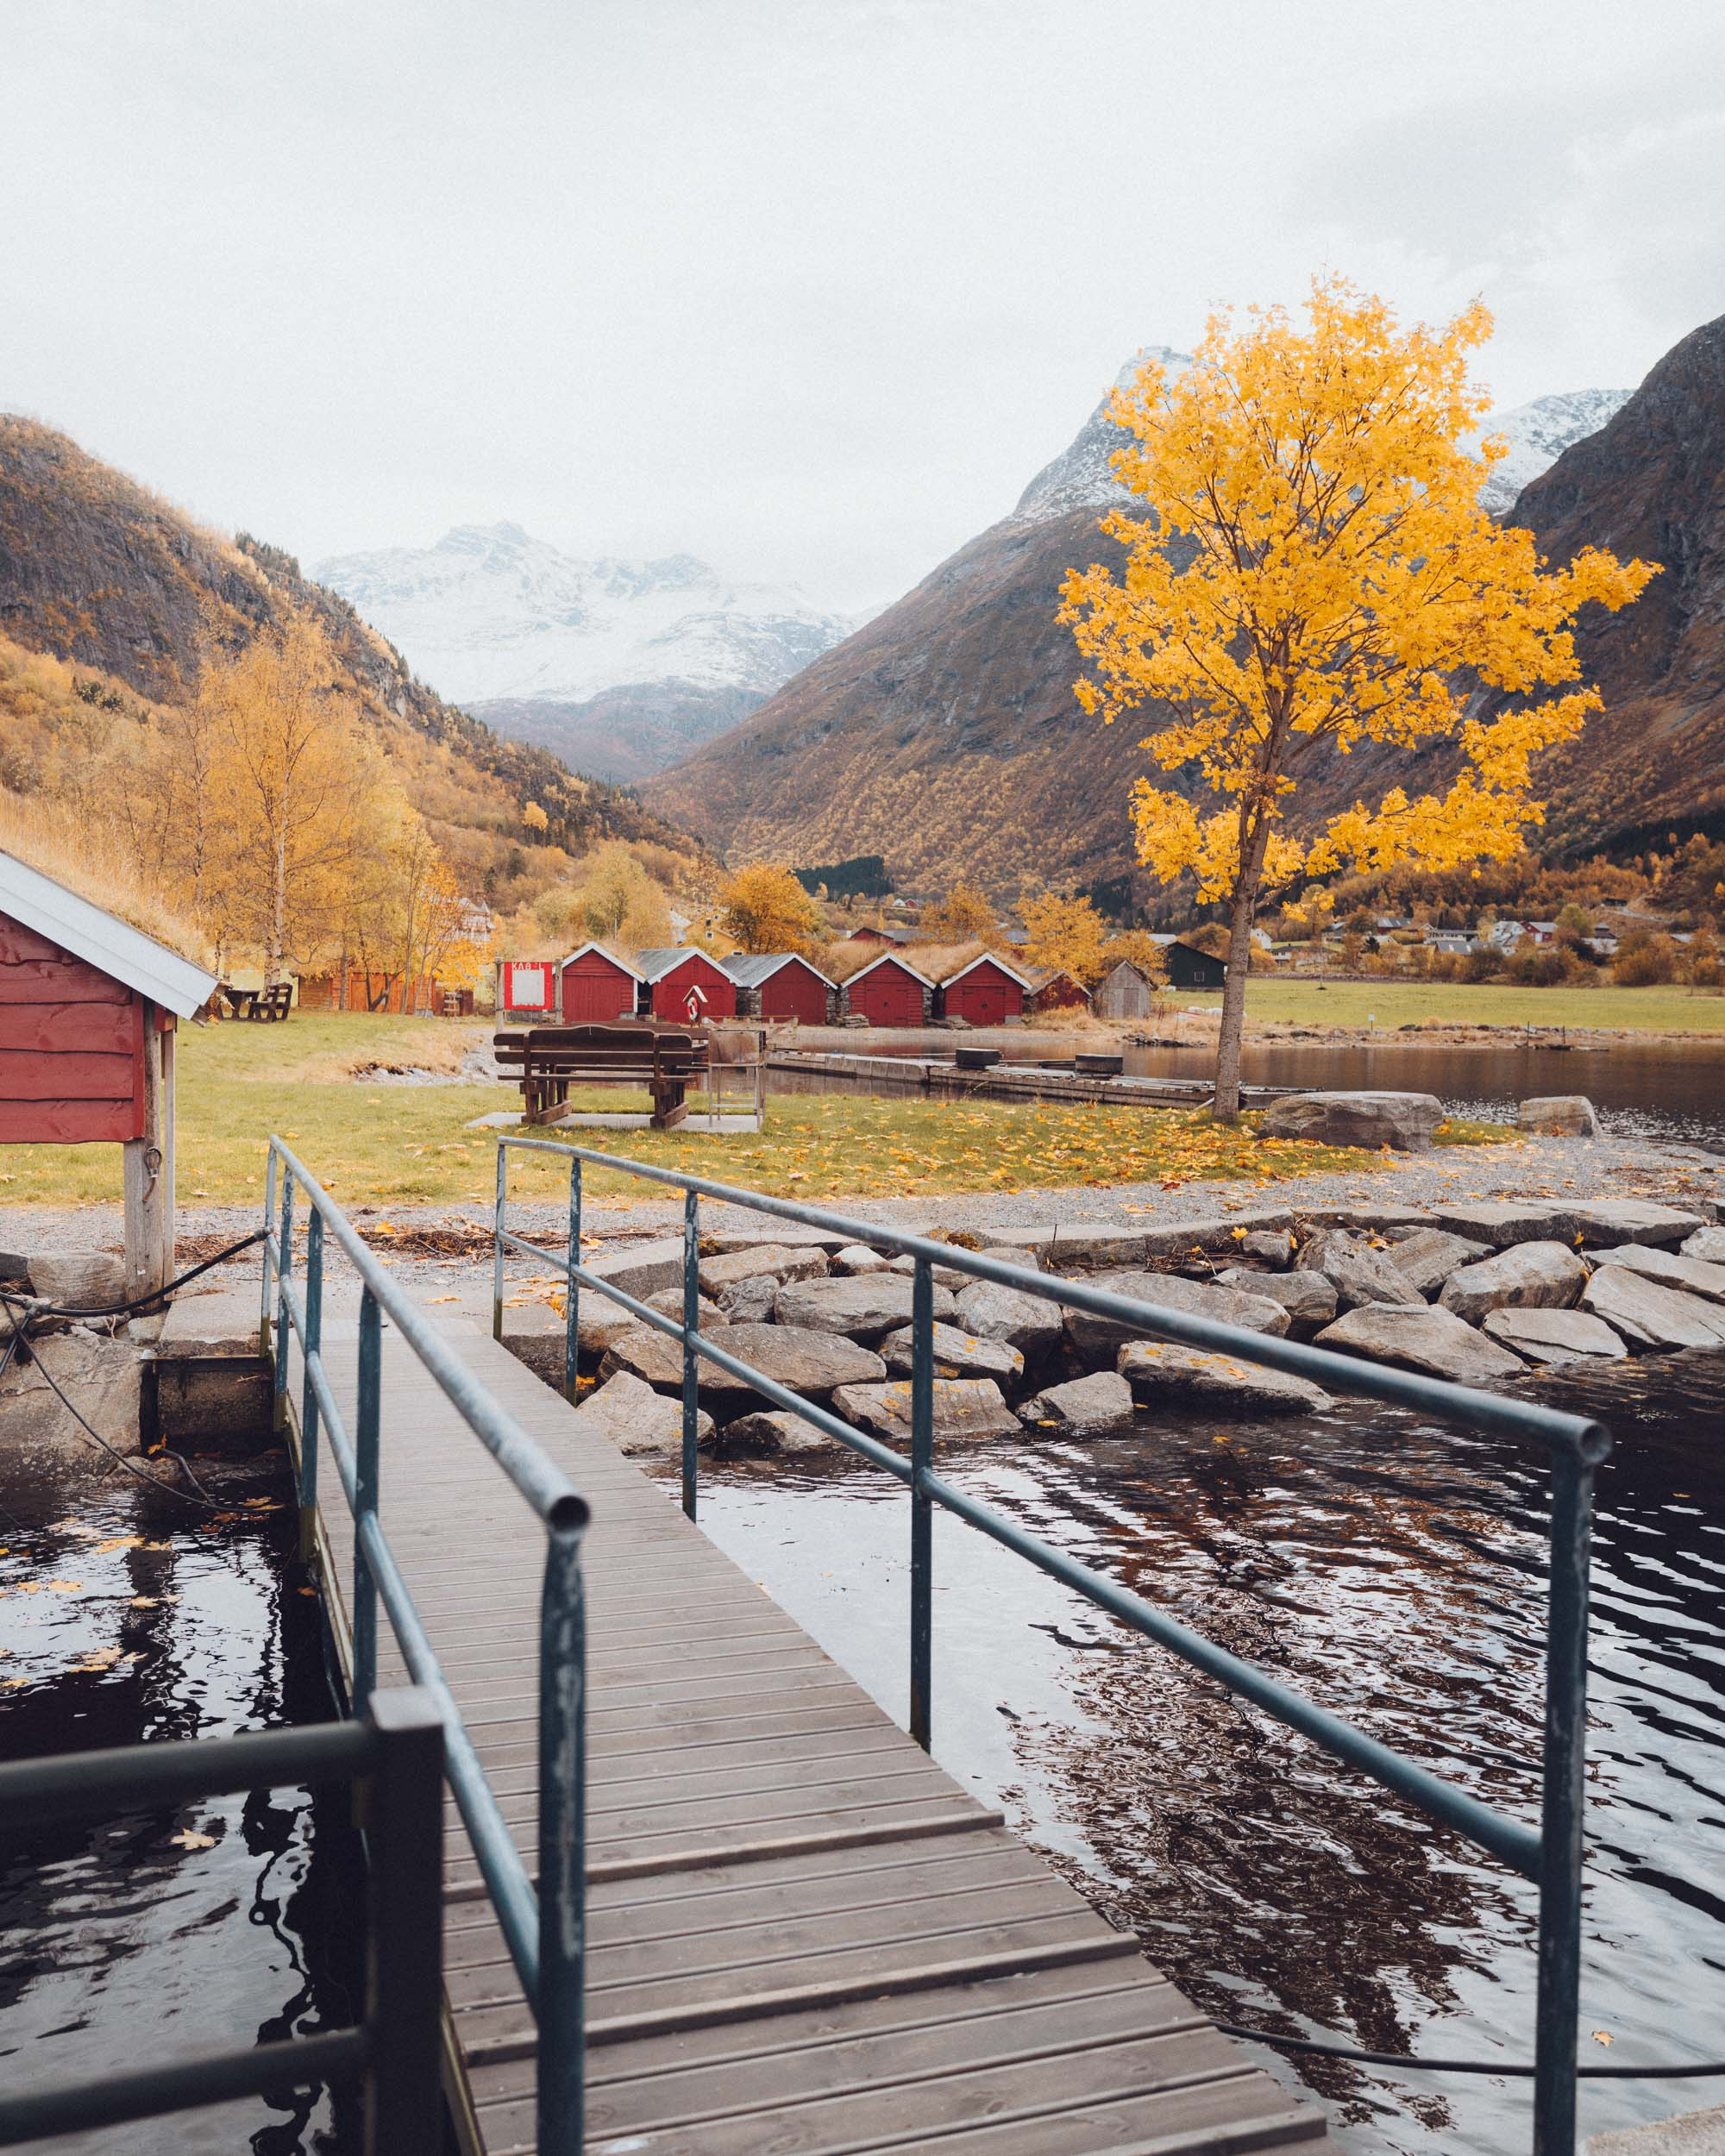 Fall colors in Norangsfjorden, Norway near Alesund